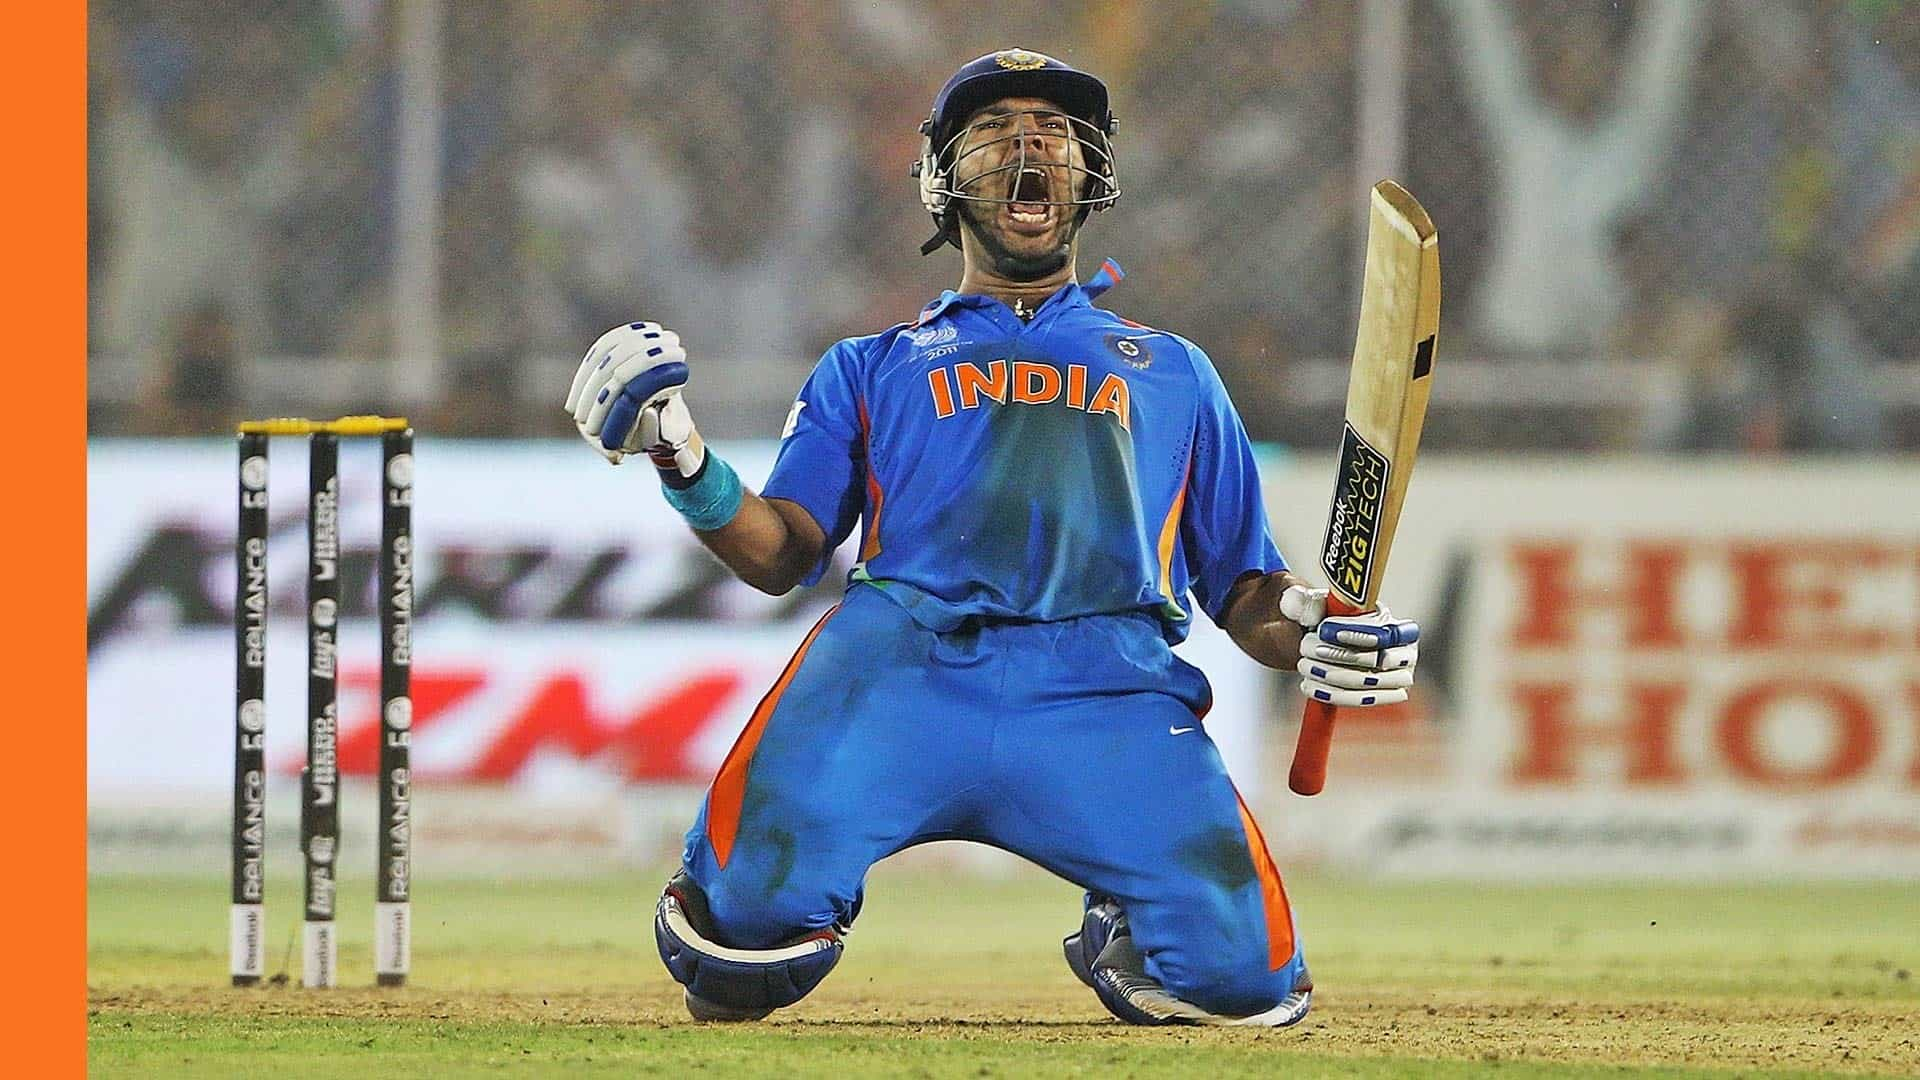 Yuvraj Singh got fewer chances in Test, now spill pain, said - 12 years player for 7 years